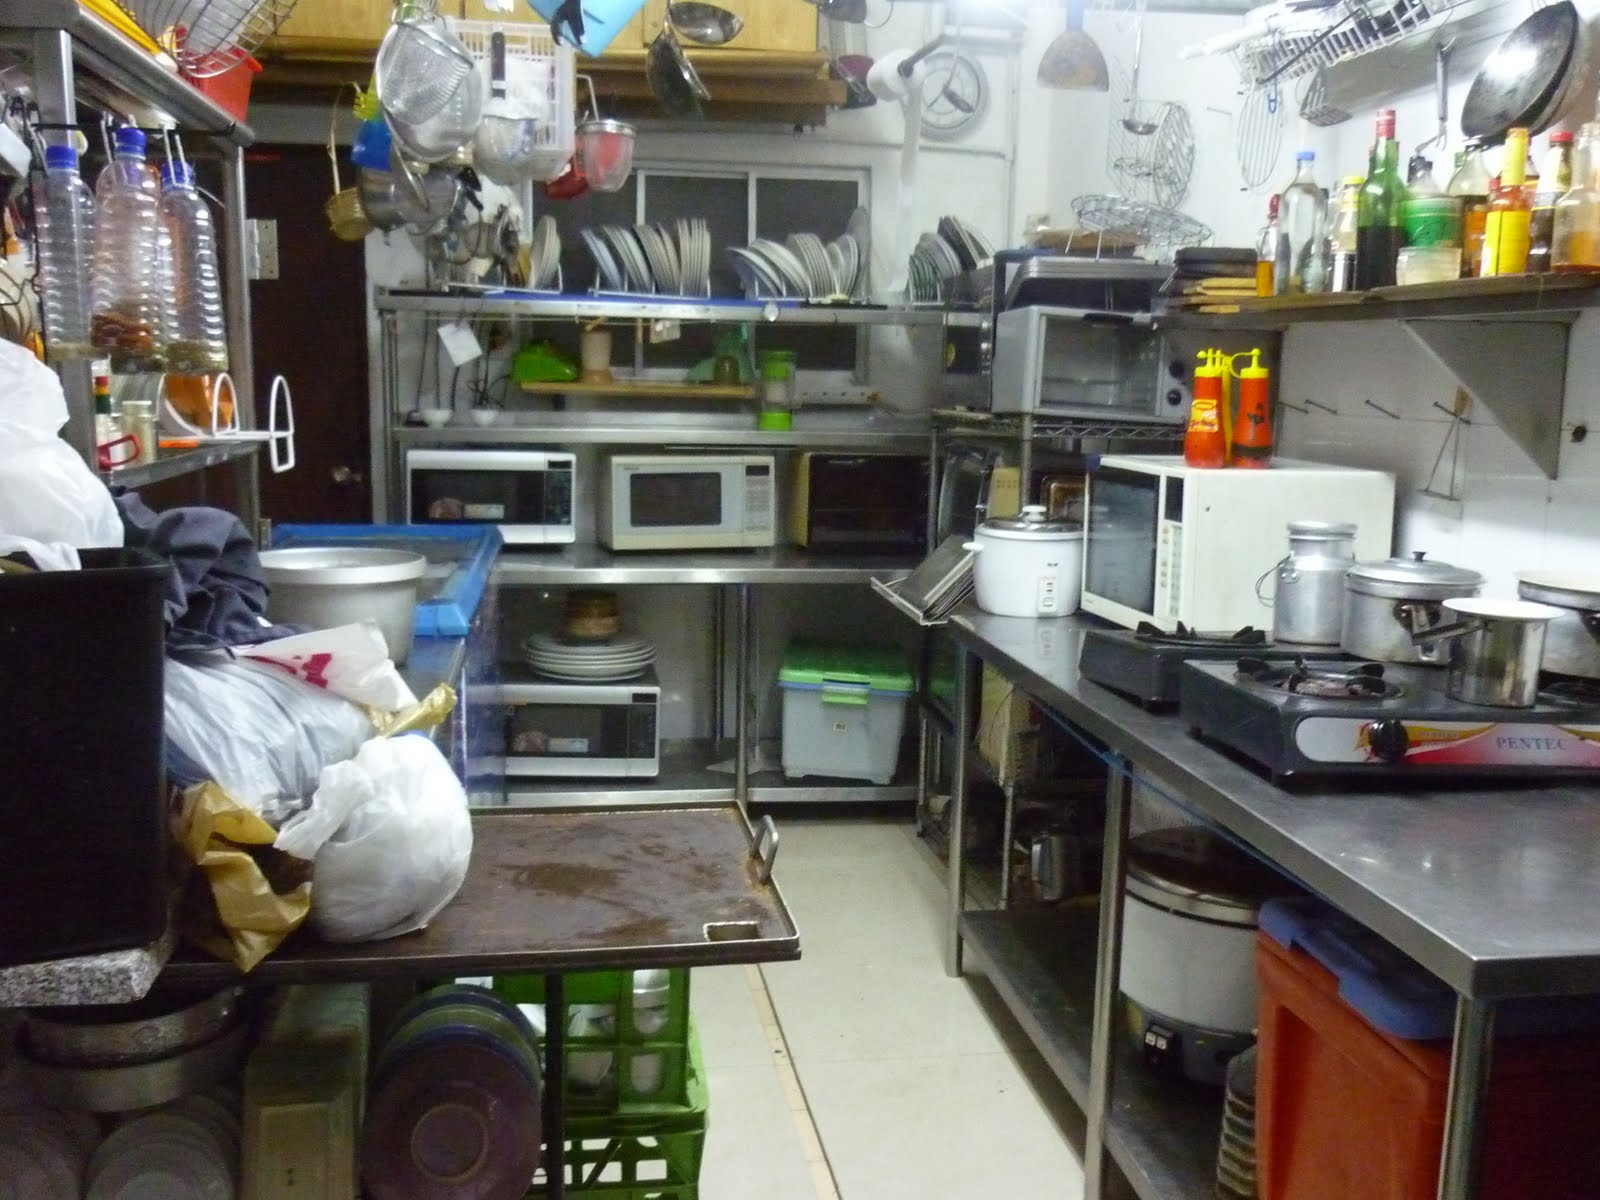 Restaurant kitchen setup Small kitchen setup